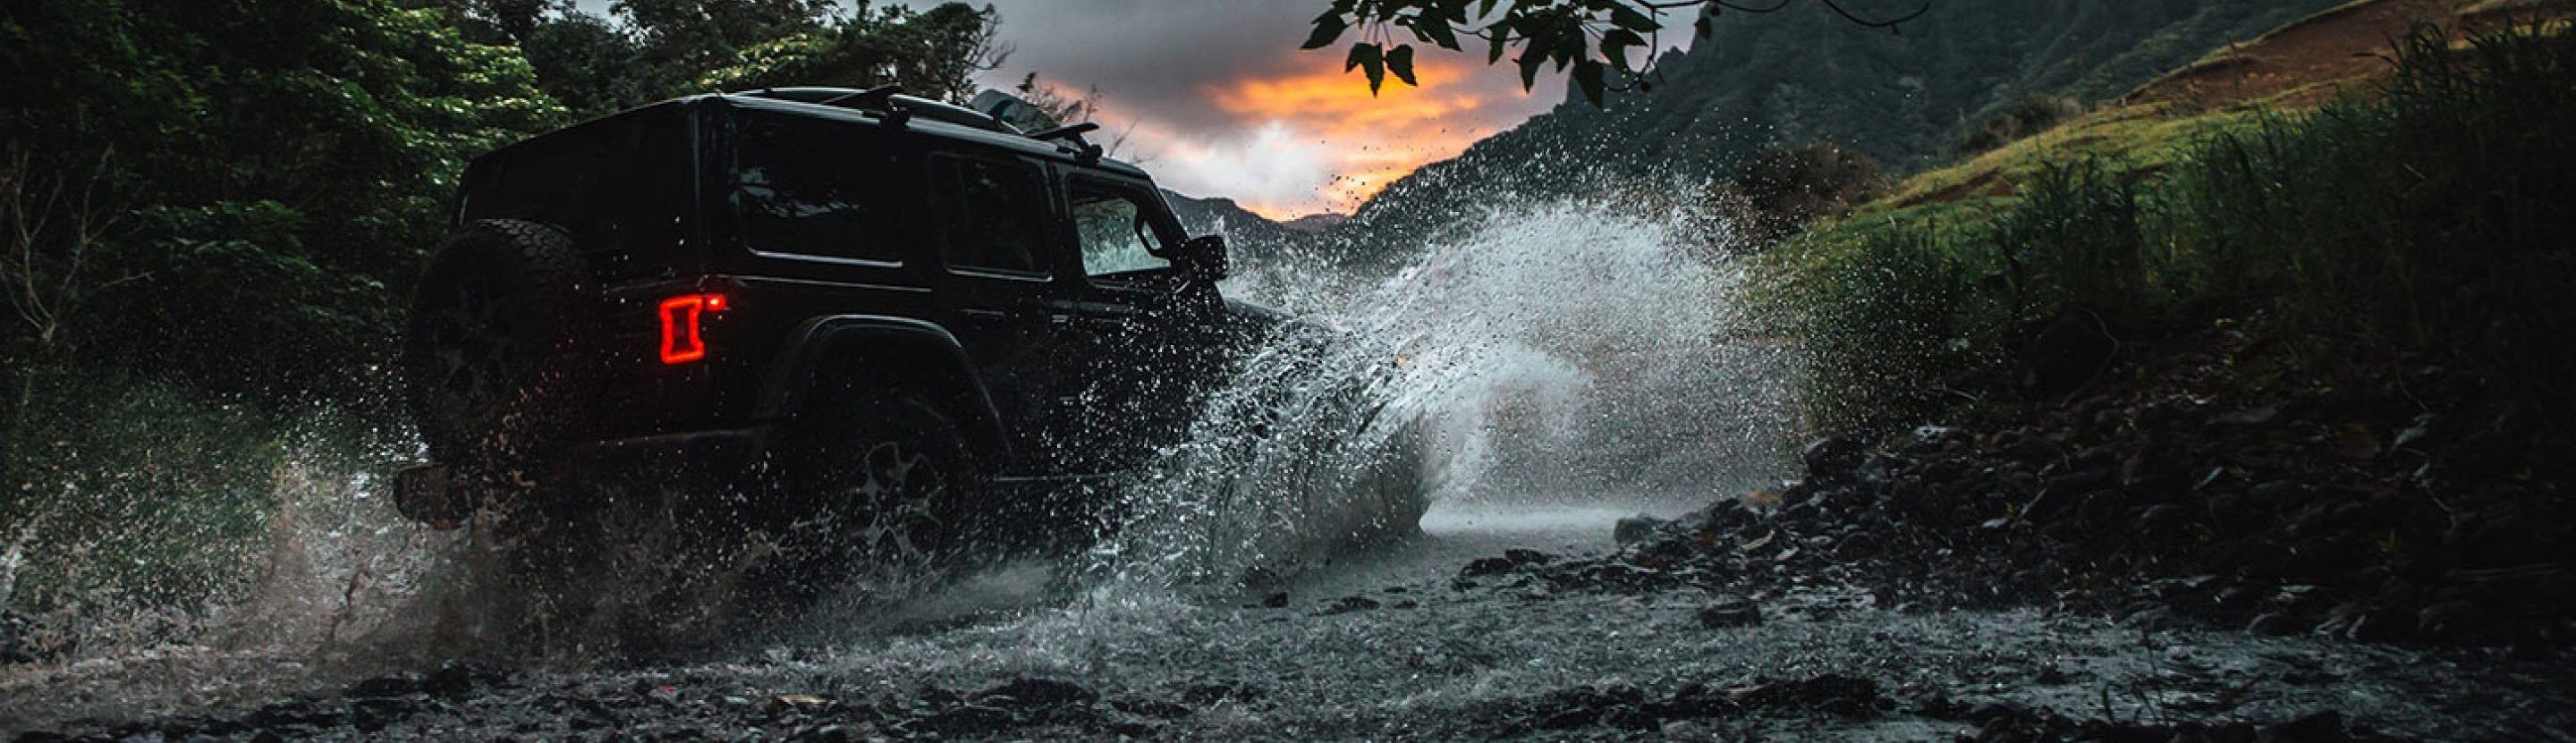 2020 Jeep Wrangler Water Fording